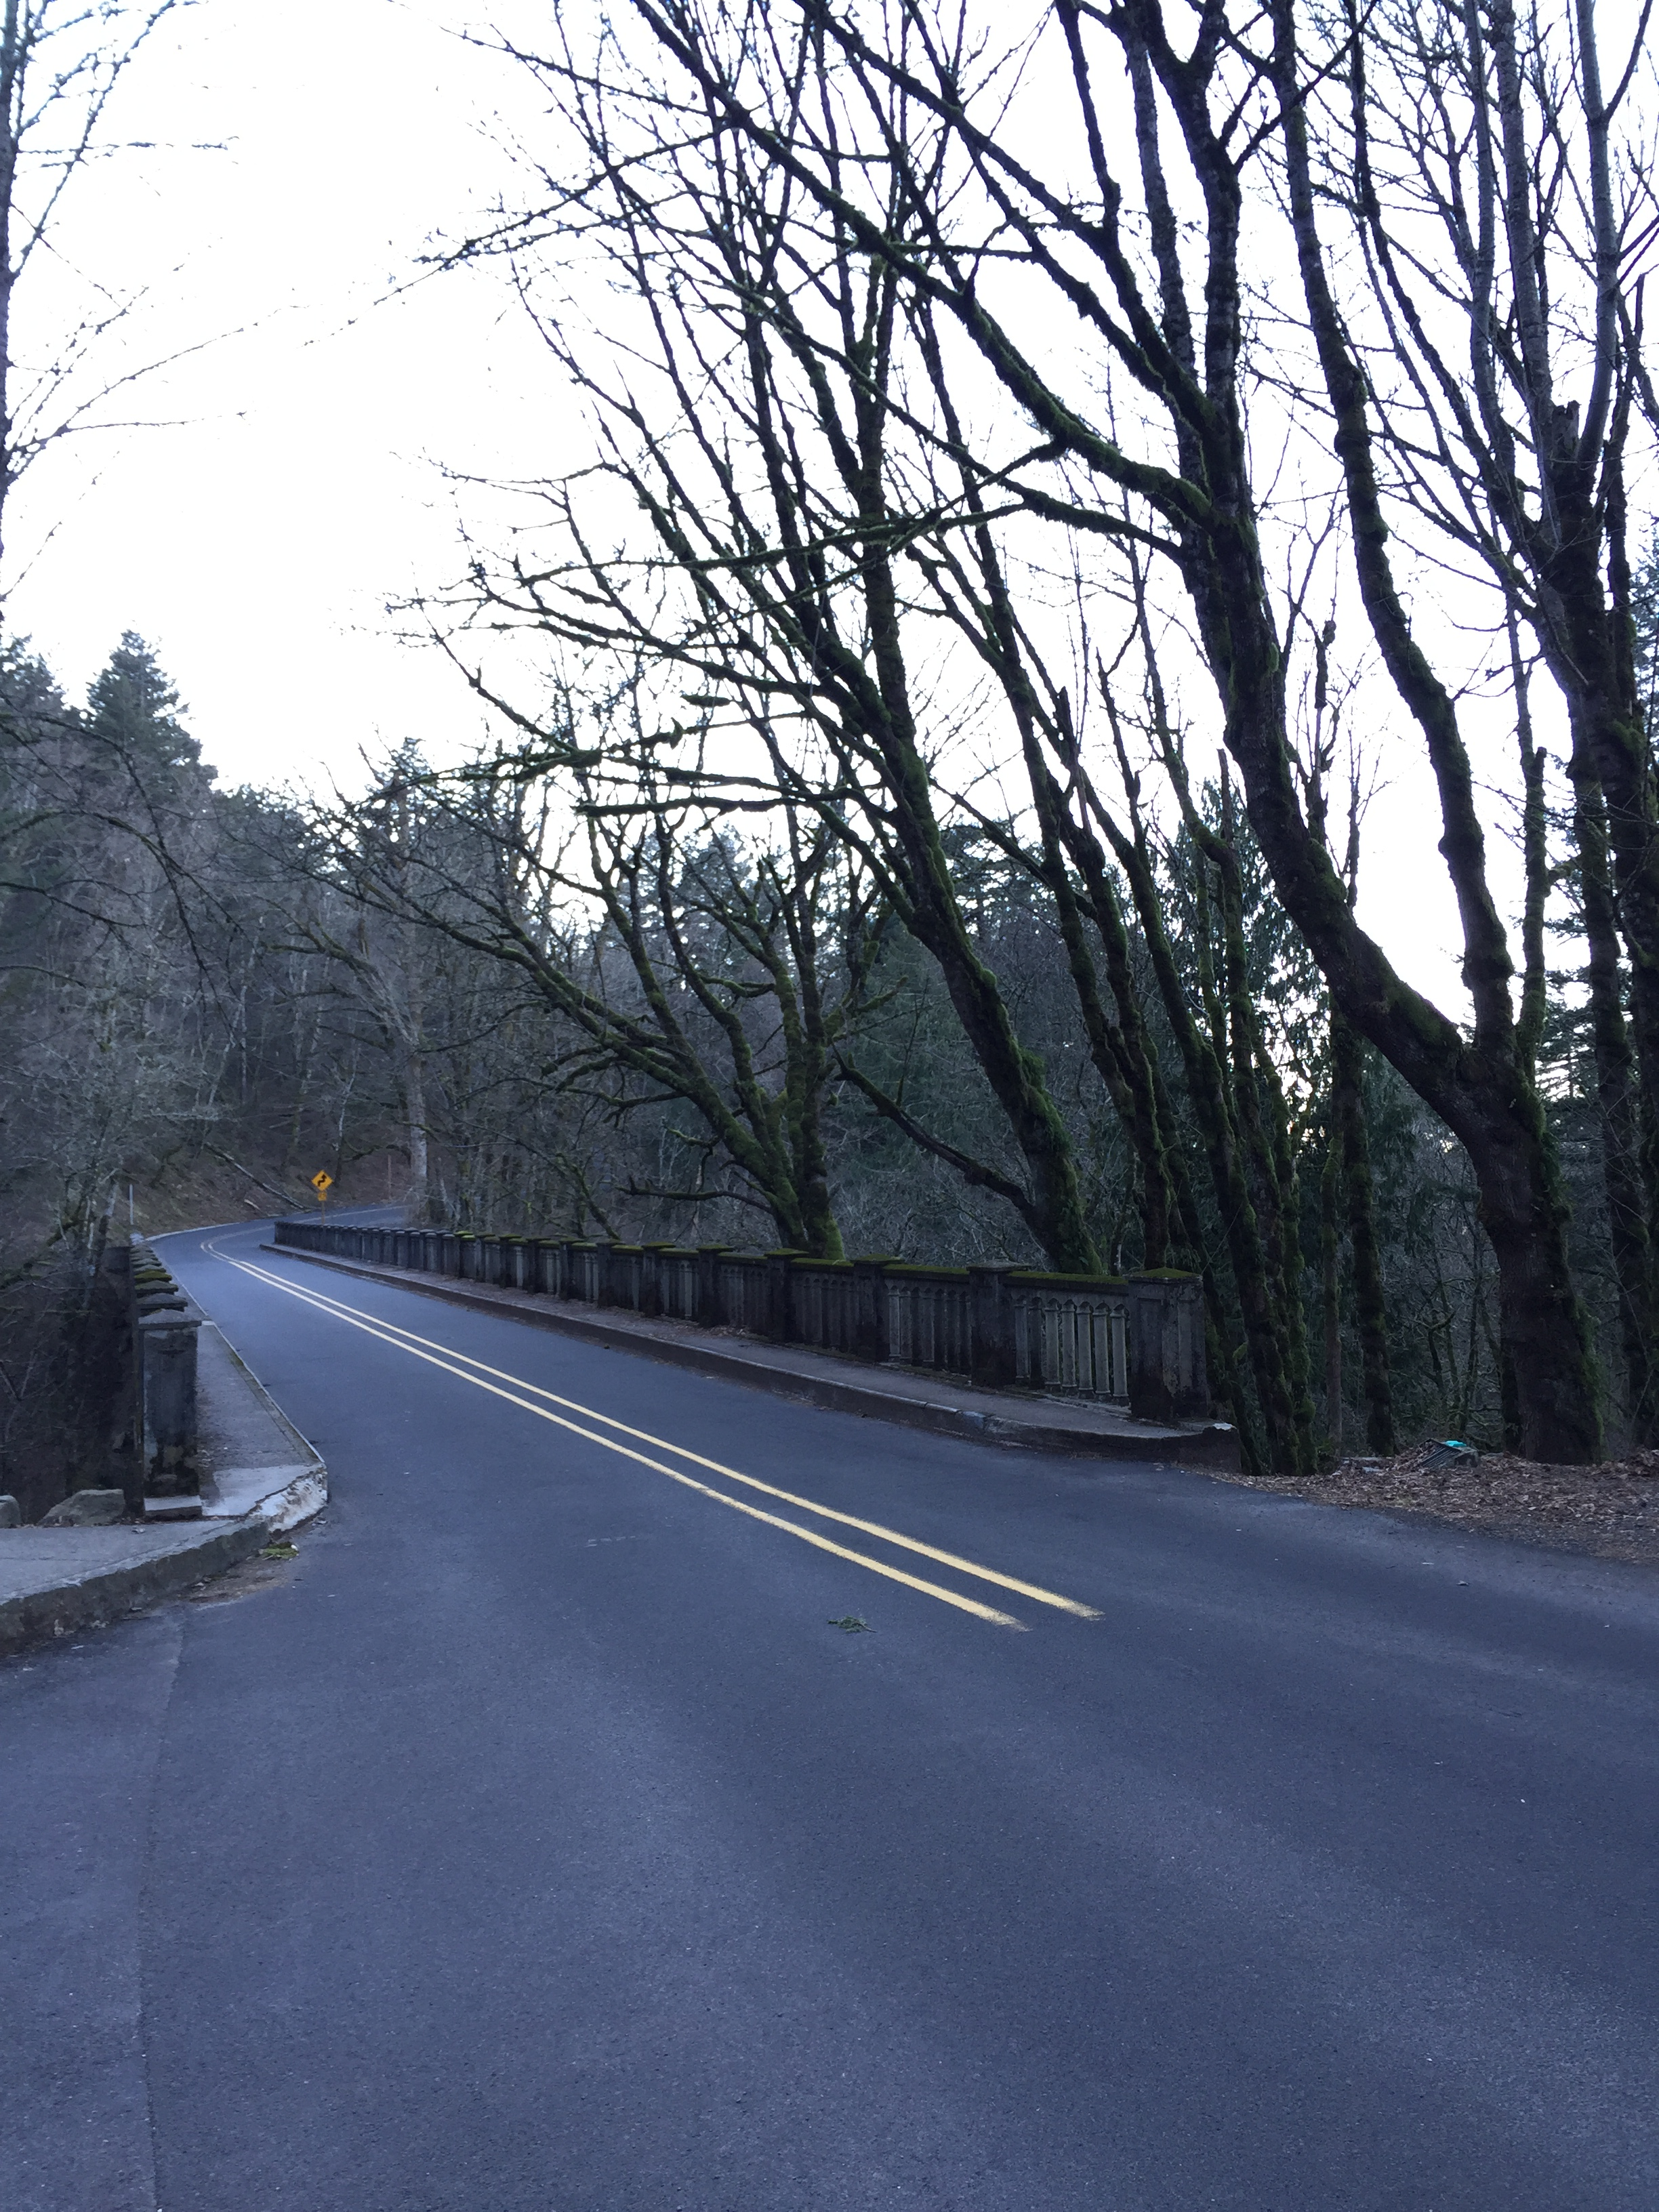 Part of the Historical Columbia River Highway